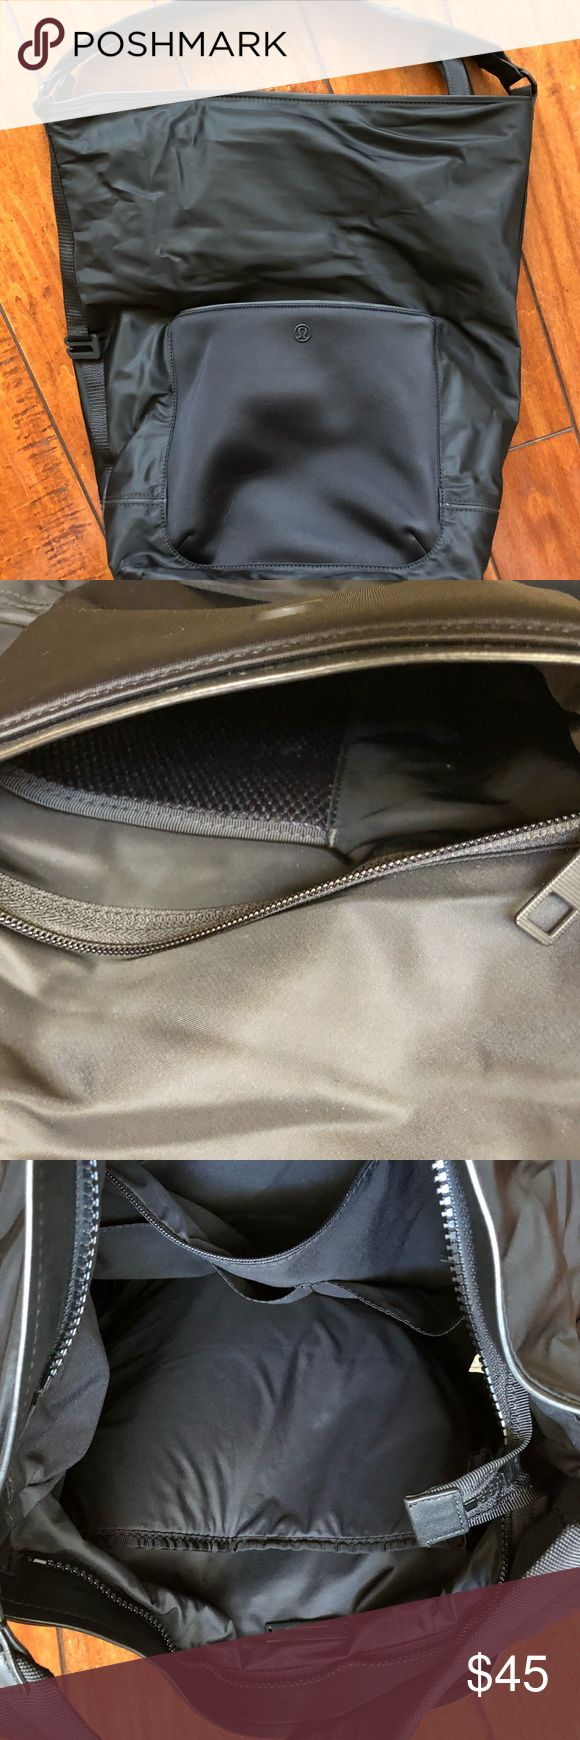 lululemon bag with laptop pouch lululemon bag with…